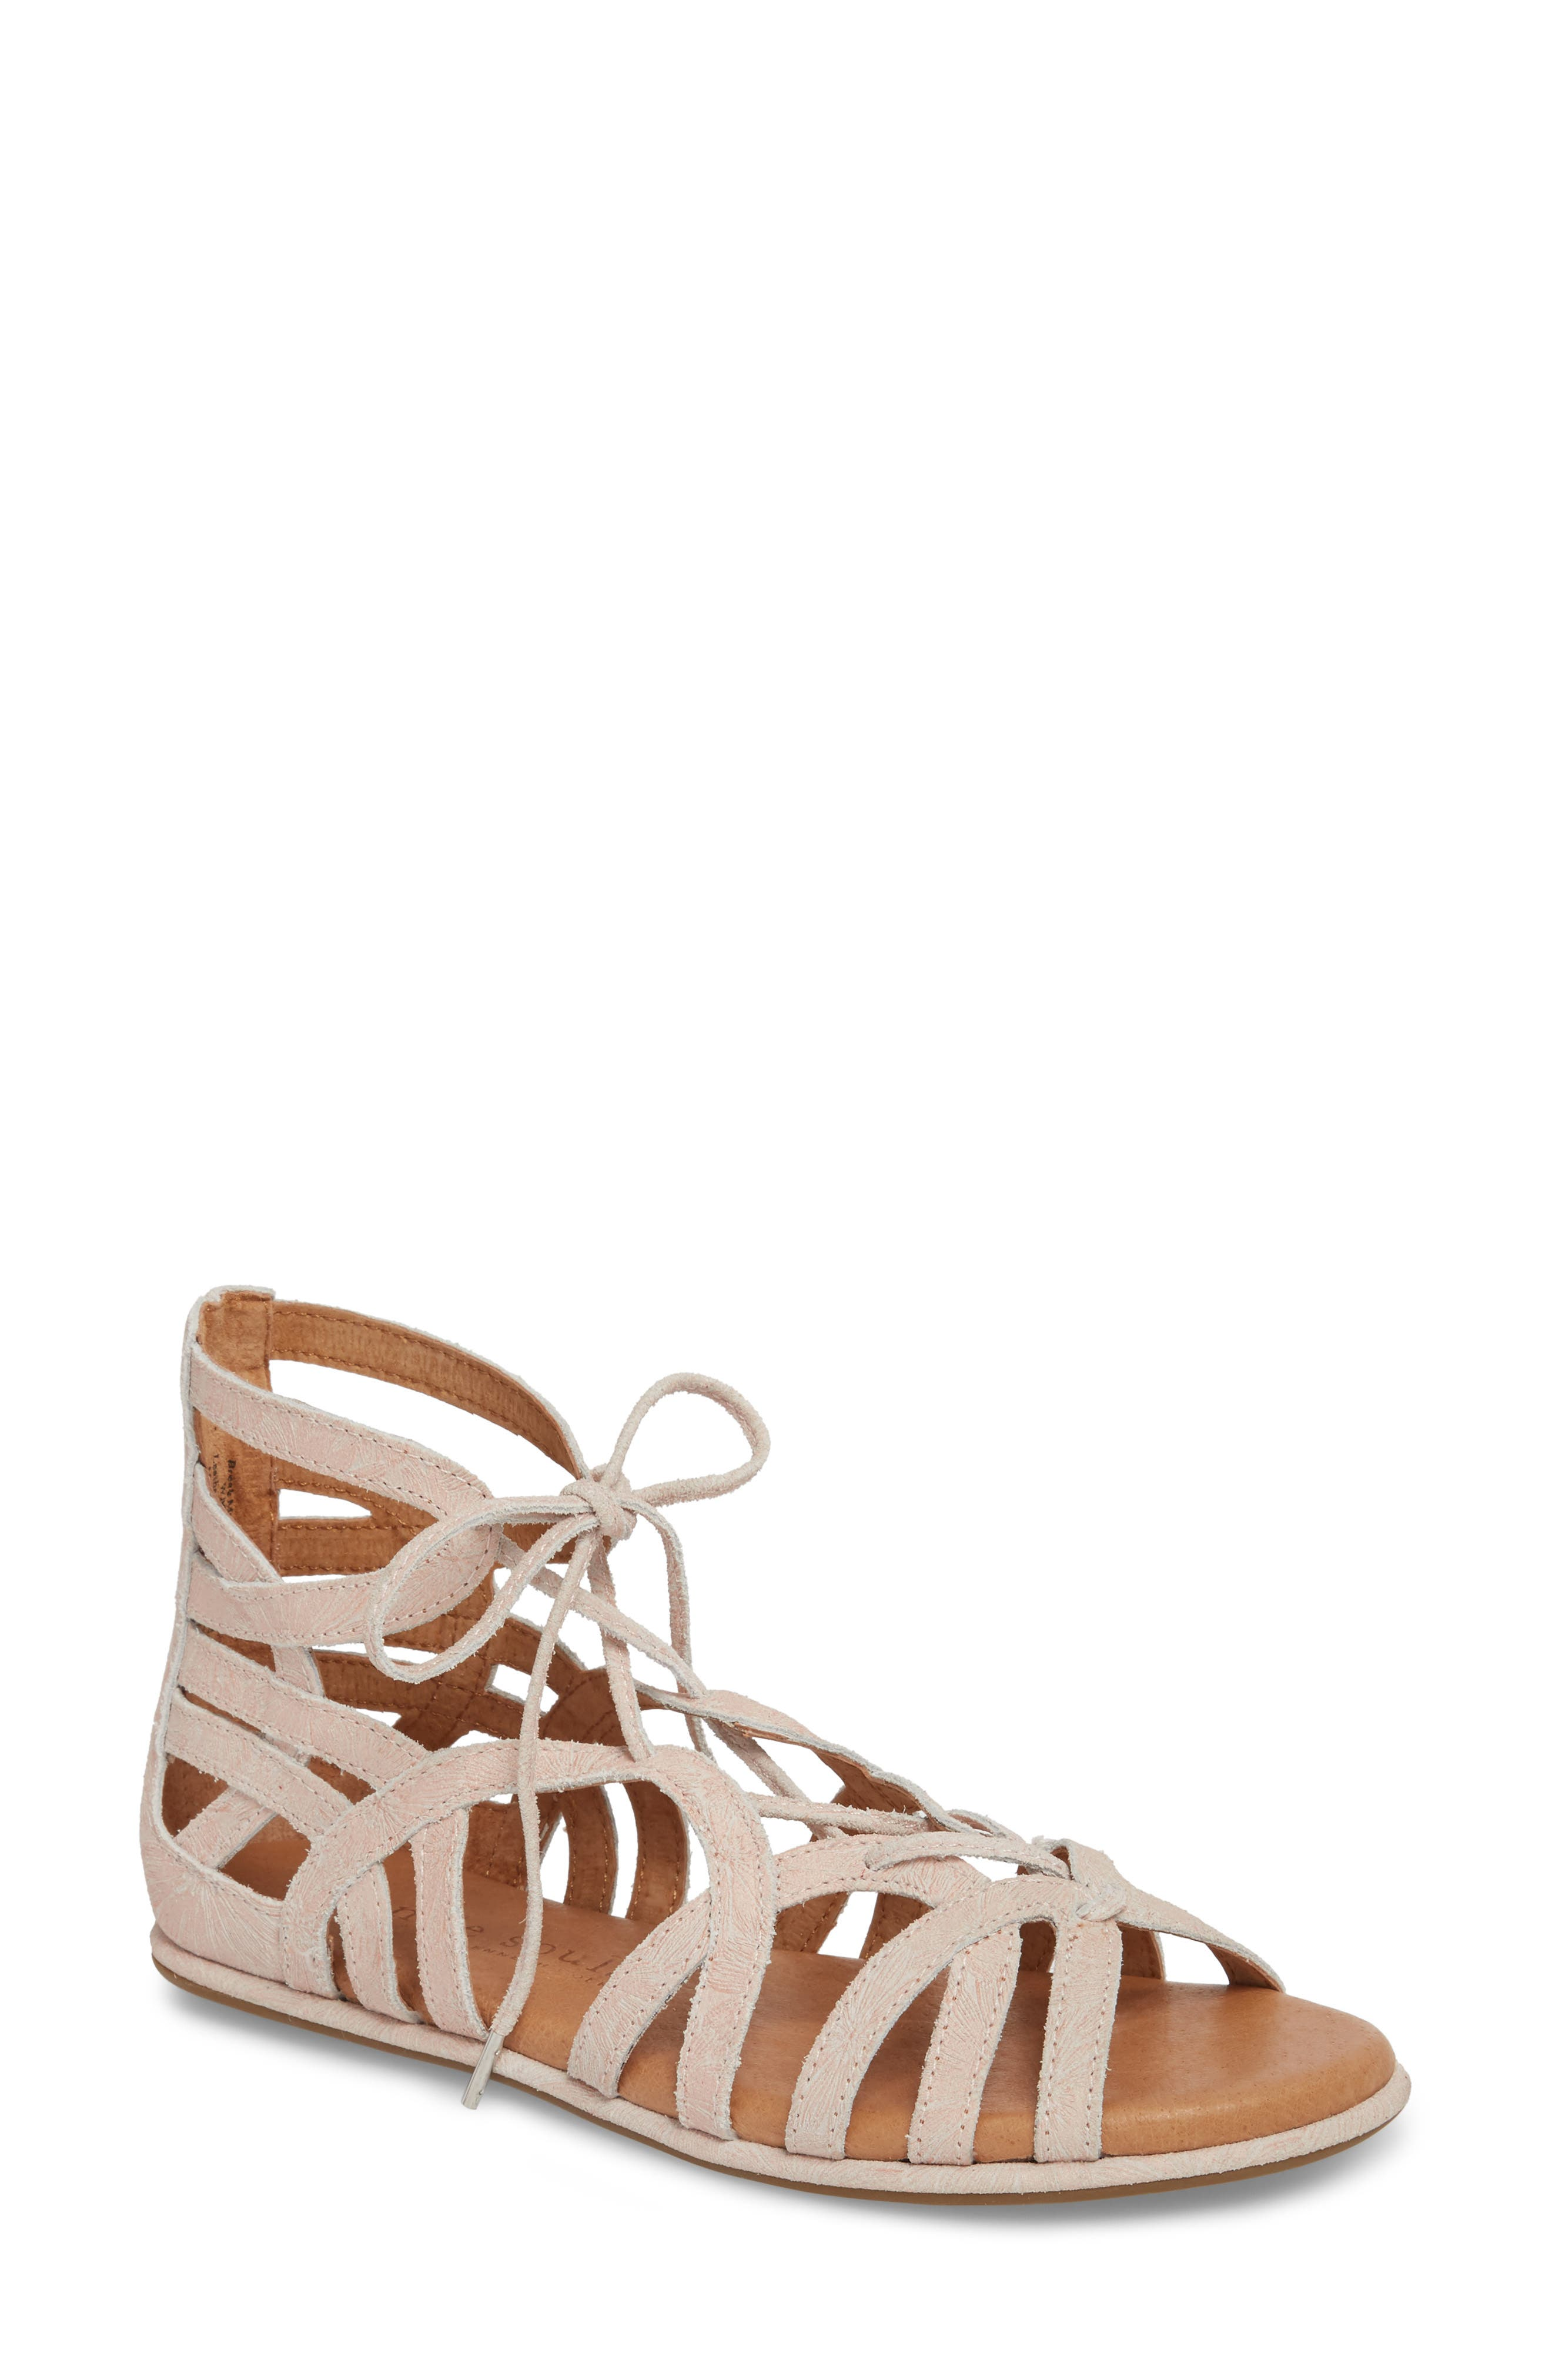 4aed74538769 GENTLE SOULS BY KENNETH COLE  BREAK MY HEART 3  CAGE SANDAL